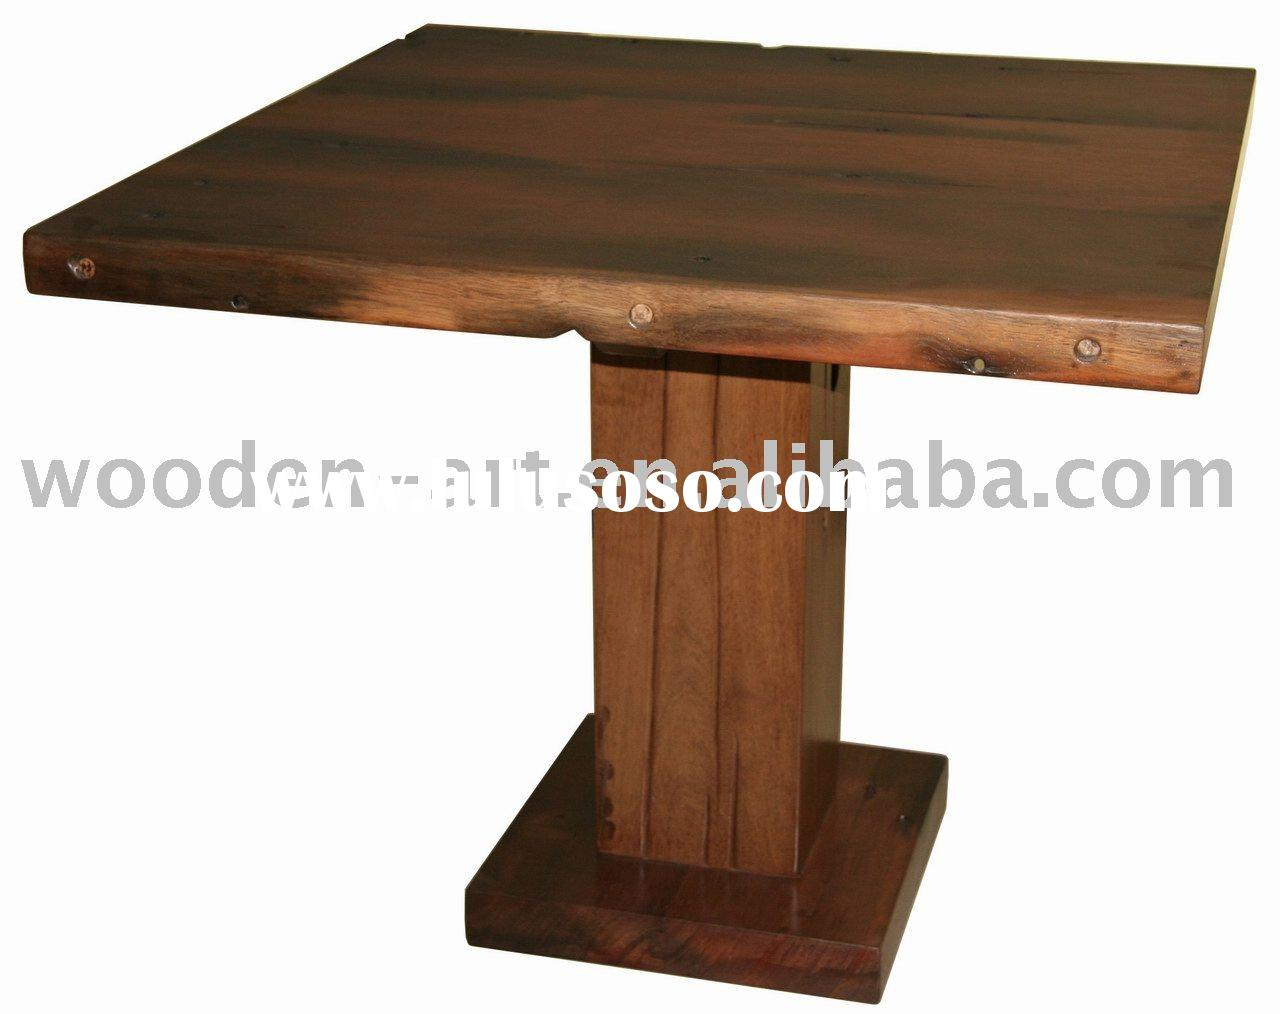 Reclaimed Wood Table Reclaimed Wood Table Manufacturers